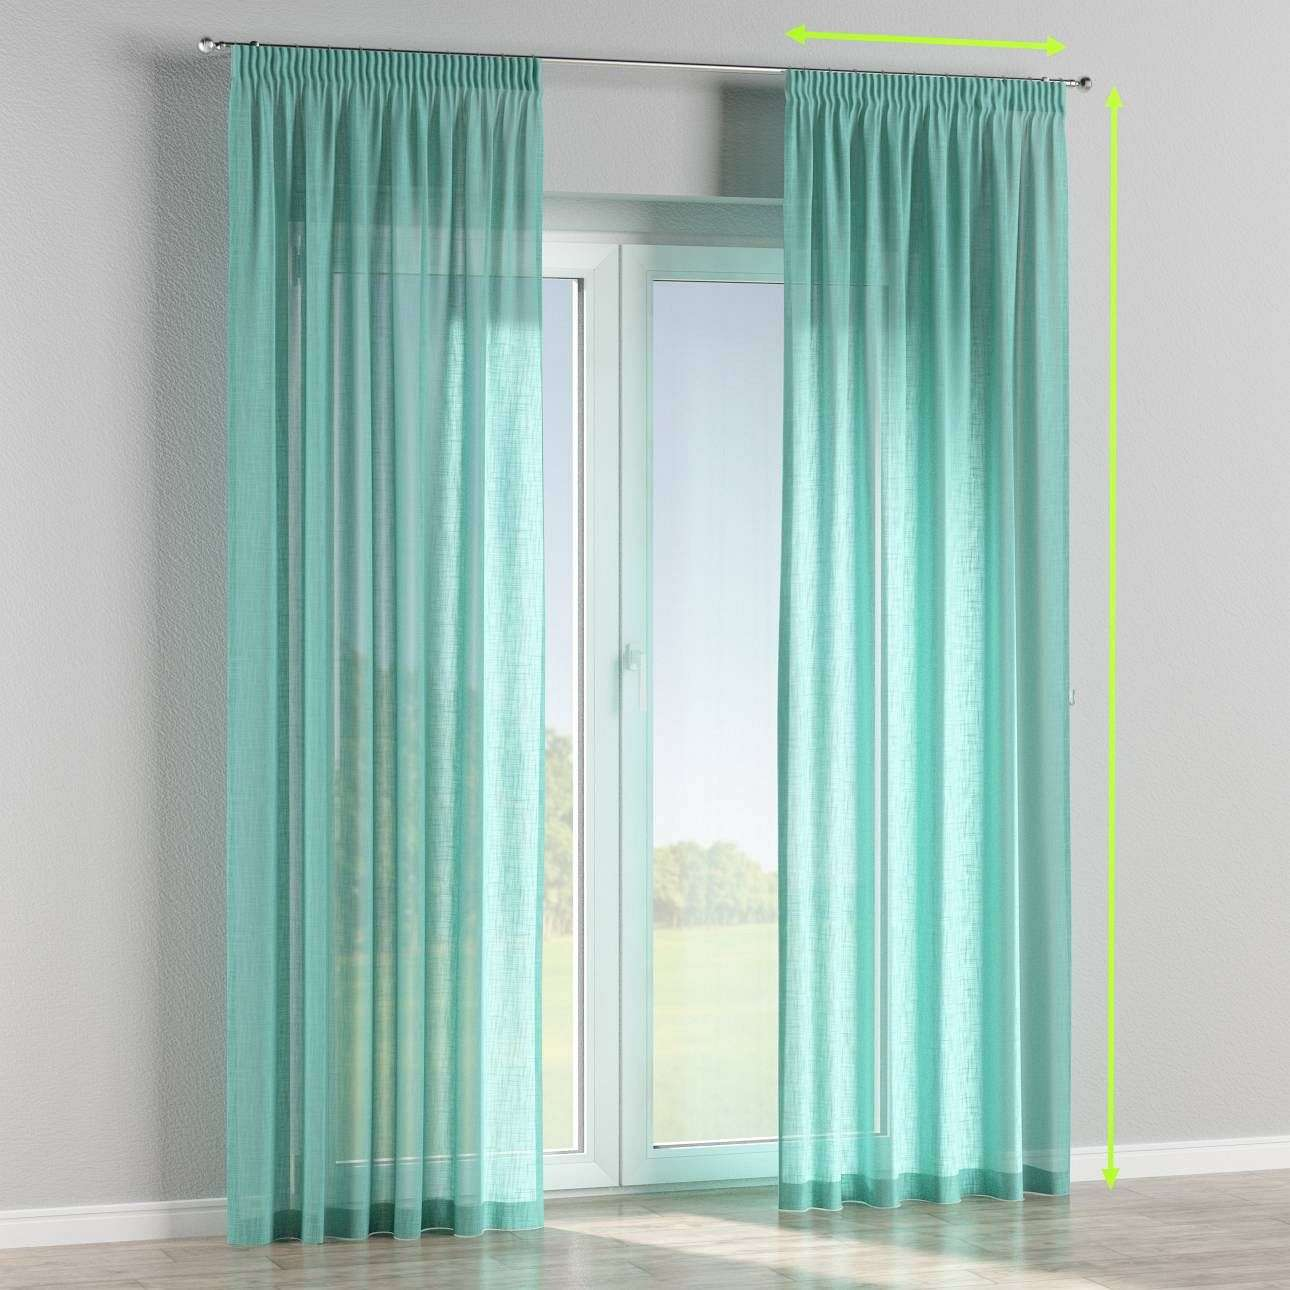 Pencil pleat curtains in collection Romantica, fabric: 128-05